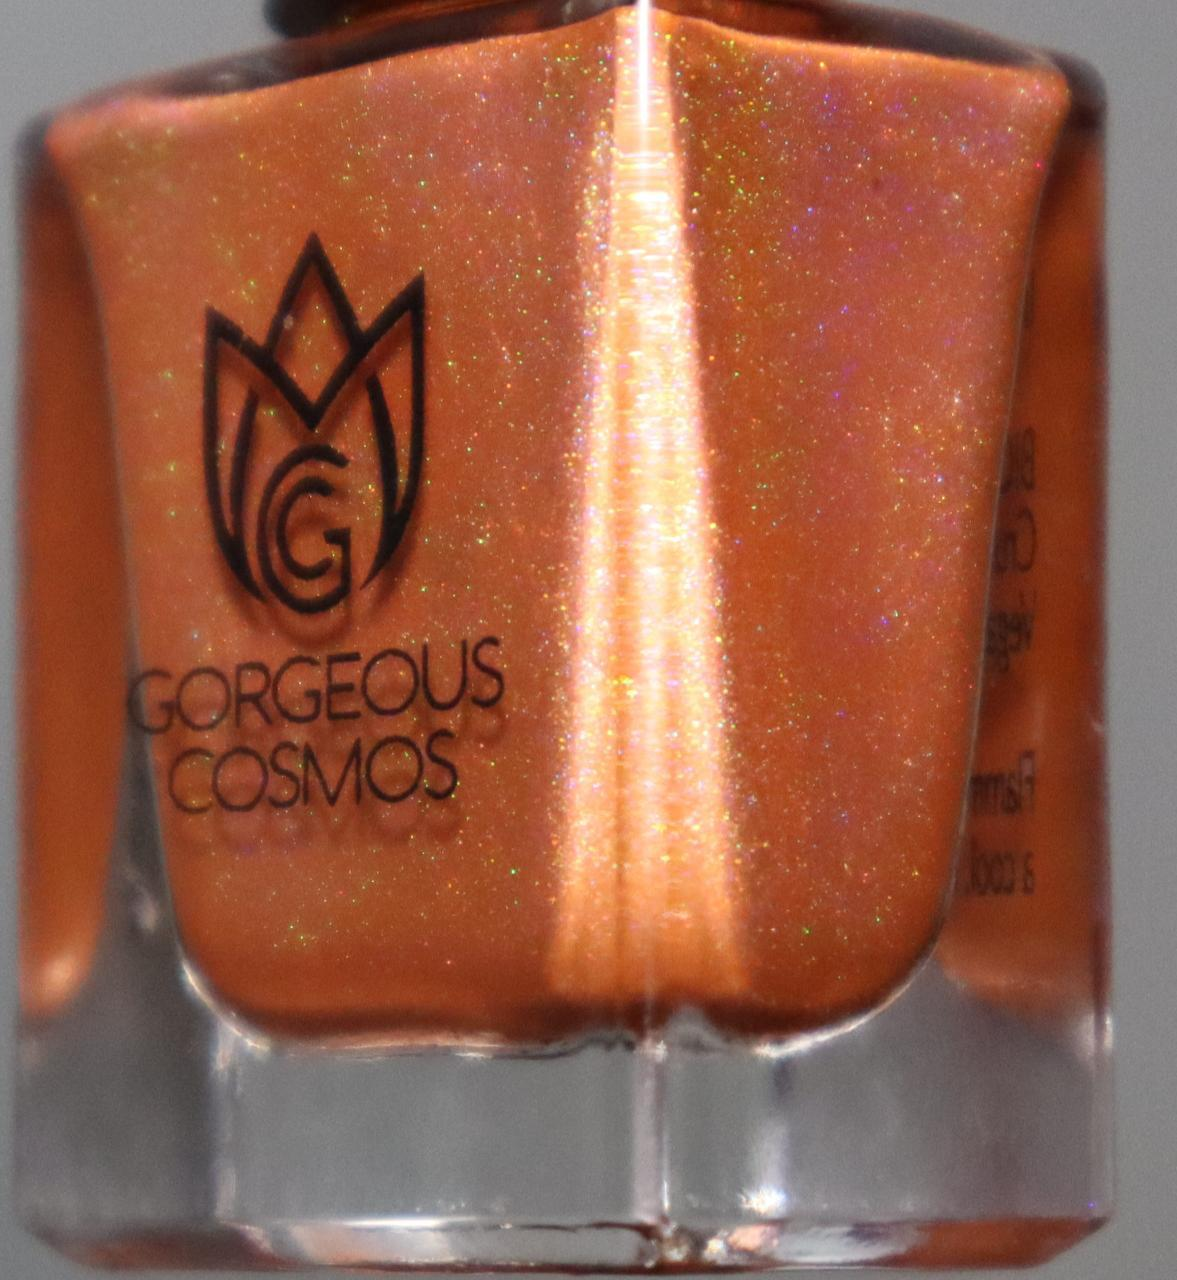 G.C. Rainbow Shooters Orange Holographic Nail Polish - I Love My Polish